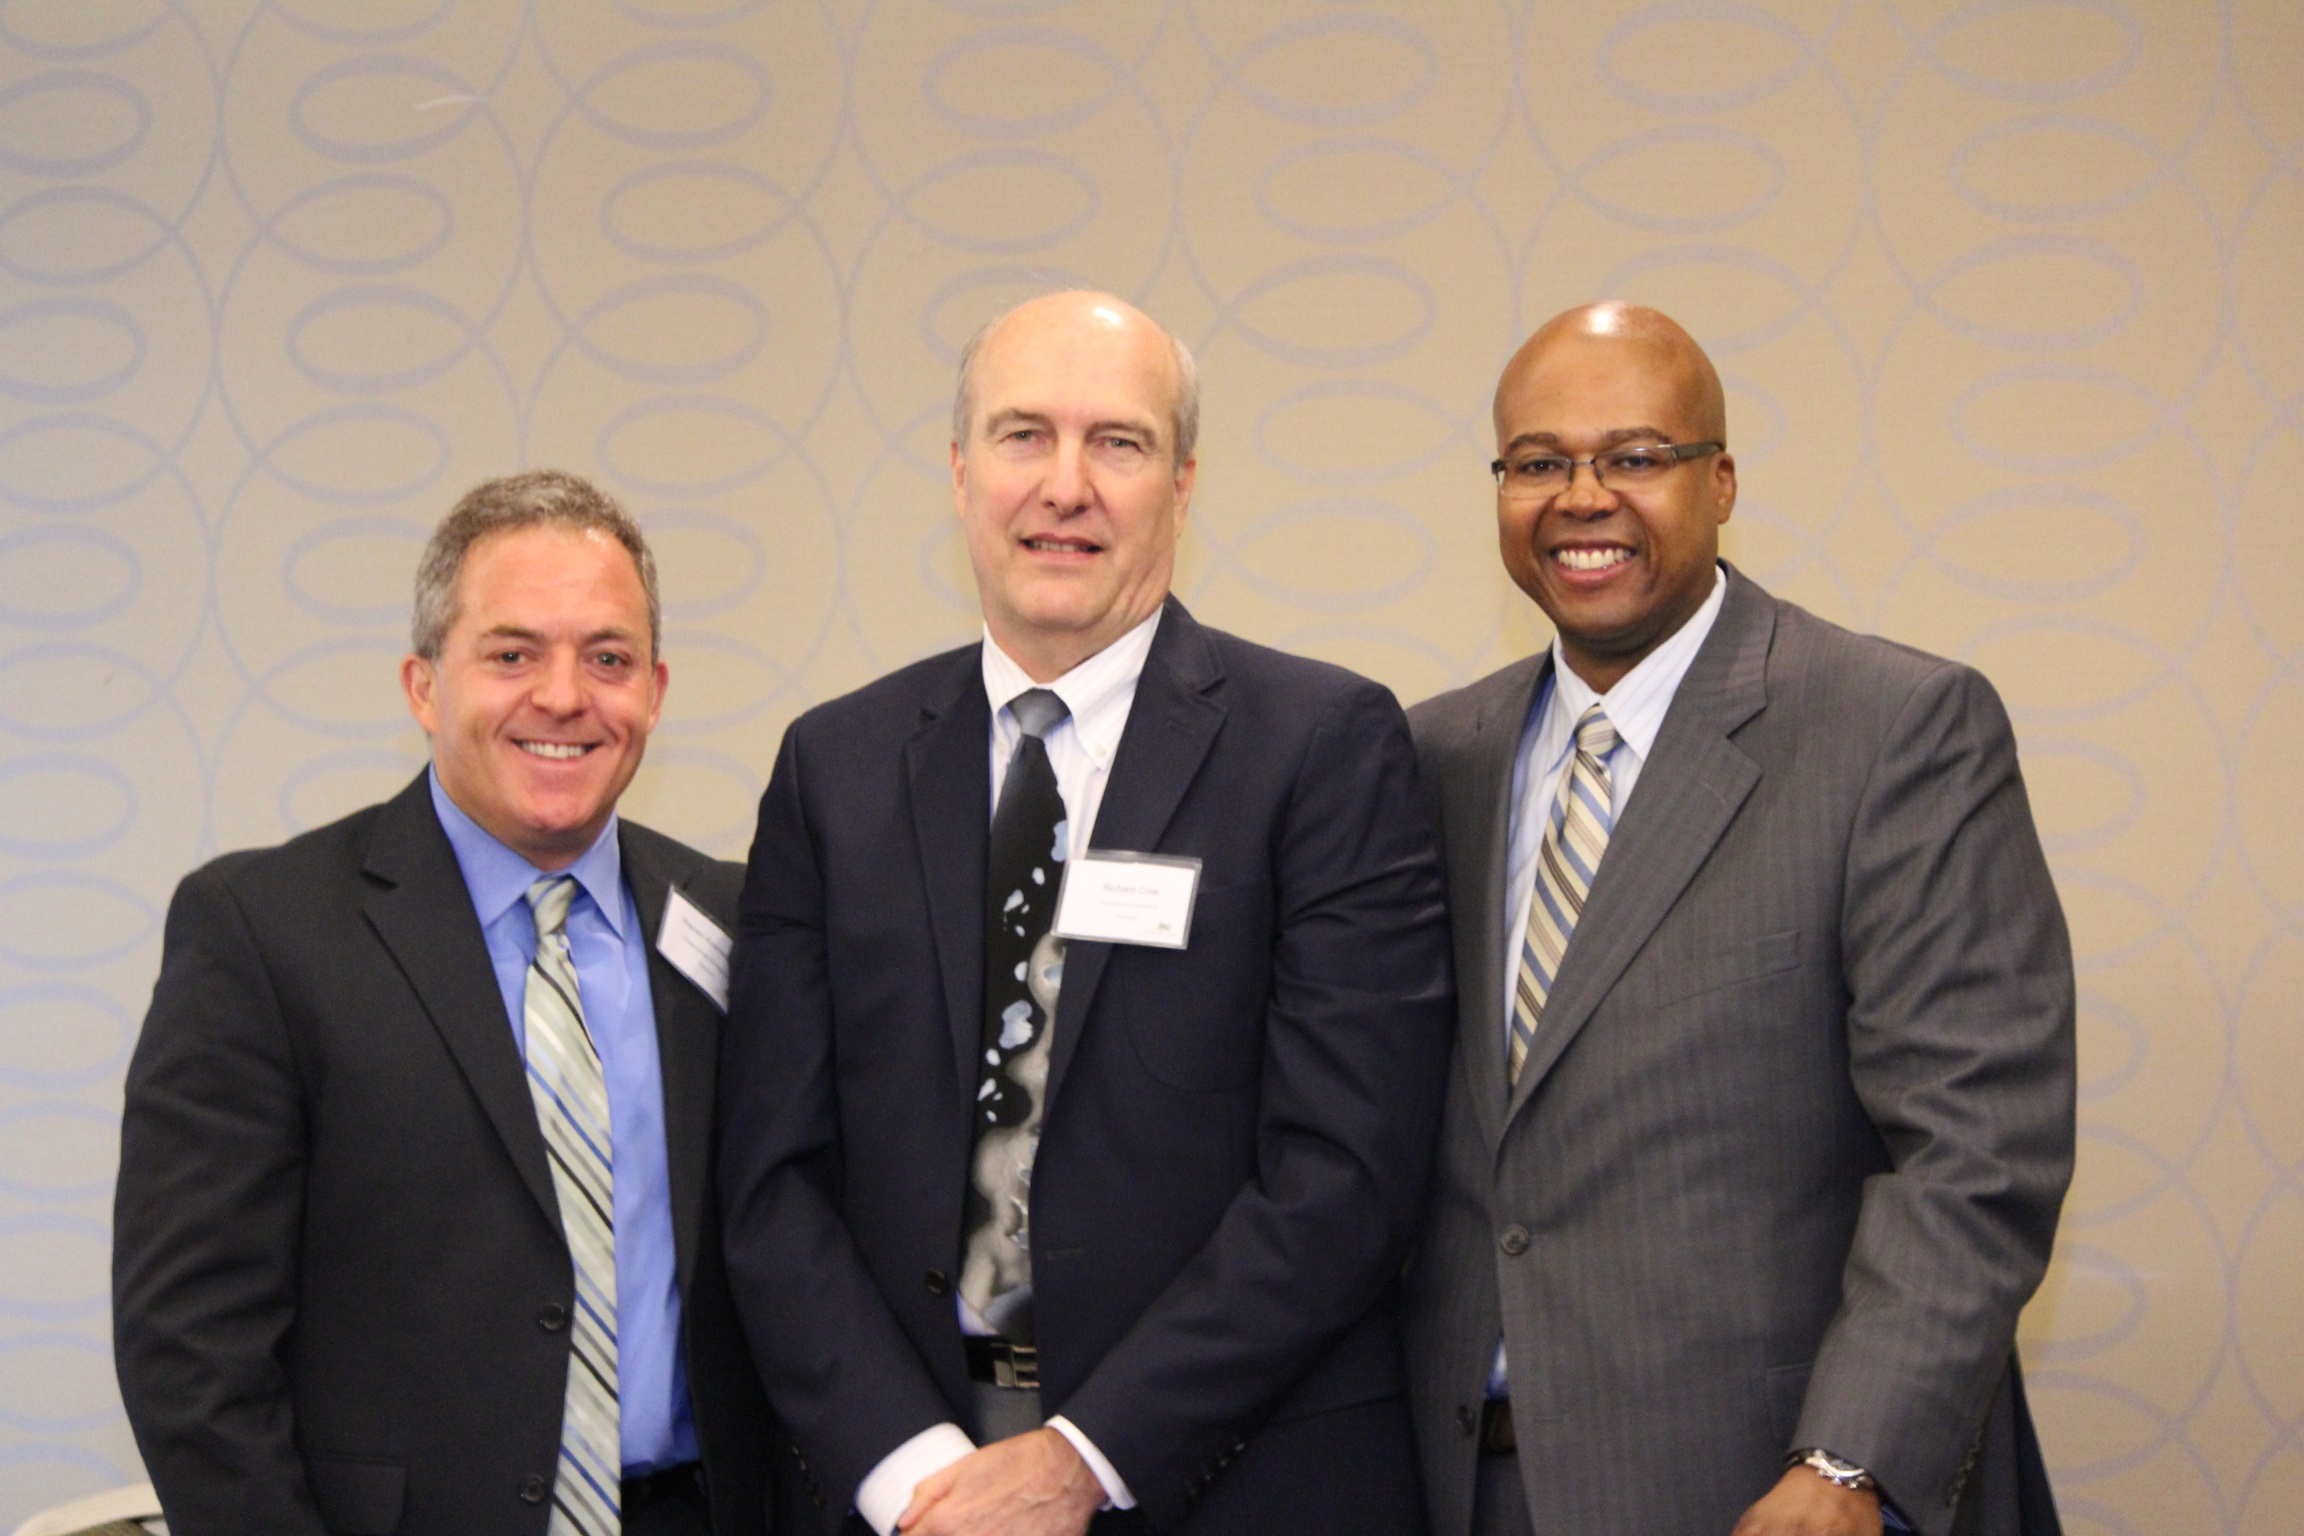 Three men in suits and ties, guest speakers at developing a Brownfields Site event